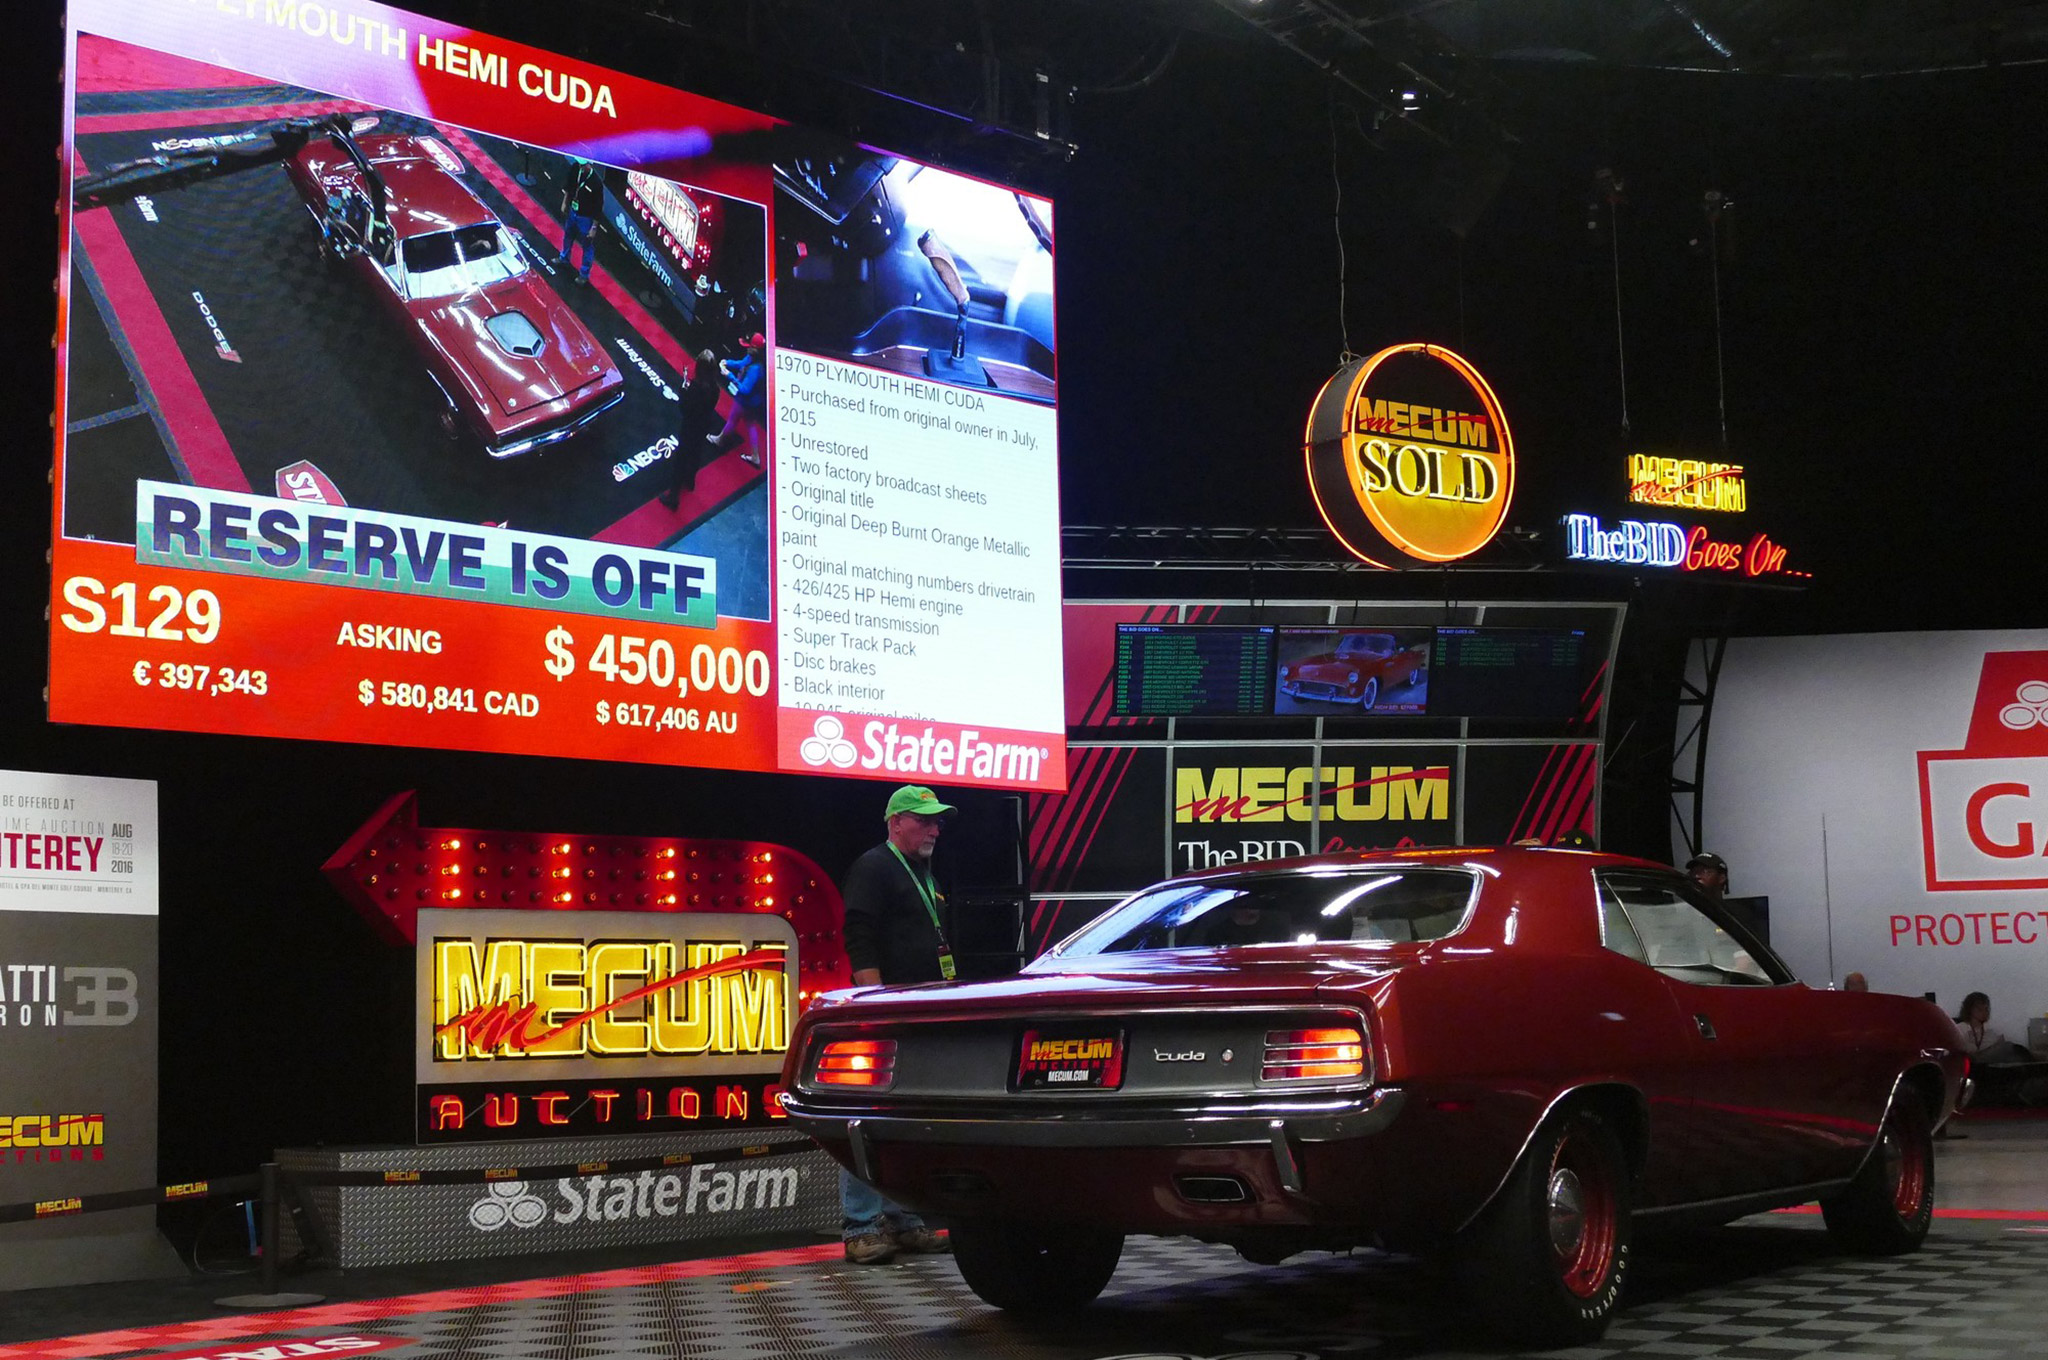 This was lot S129, an unrestored Hemi 'Cuda with very limited ownership, excellent originality, and a final hammer price of $425,000. You can find other images of this car are in the Mecum Indy photo gallery, below.